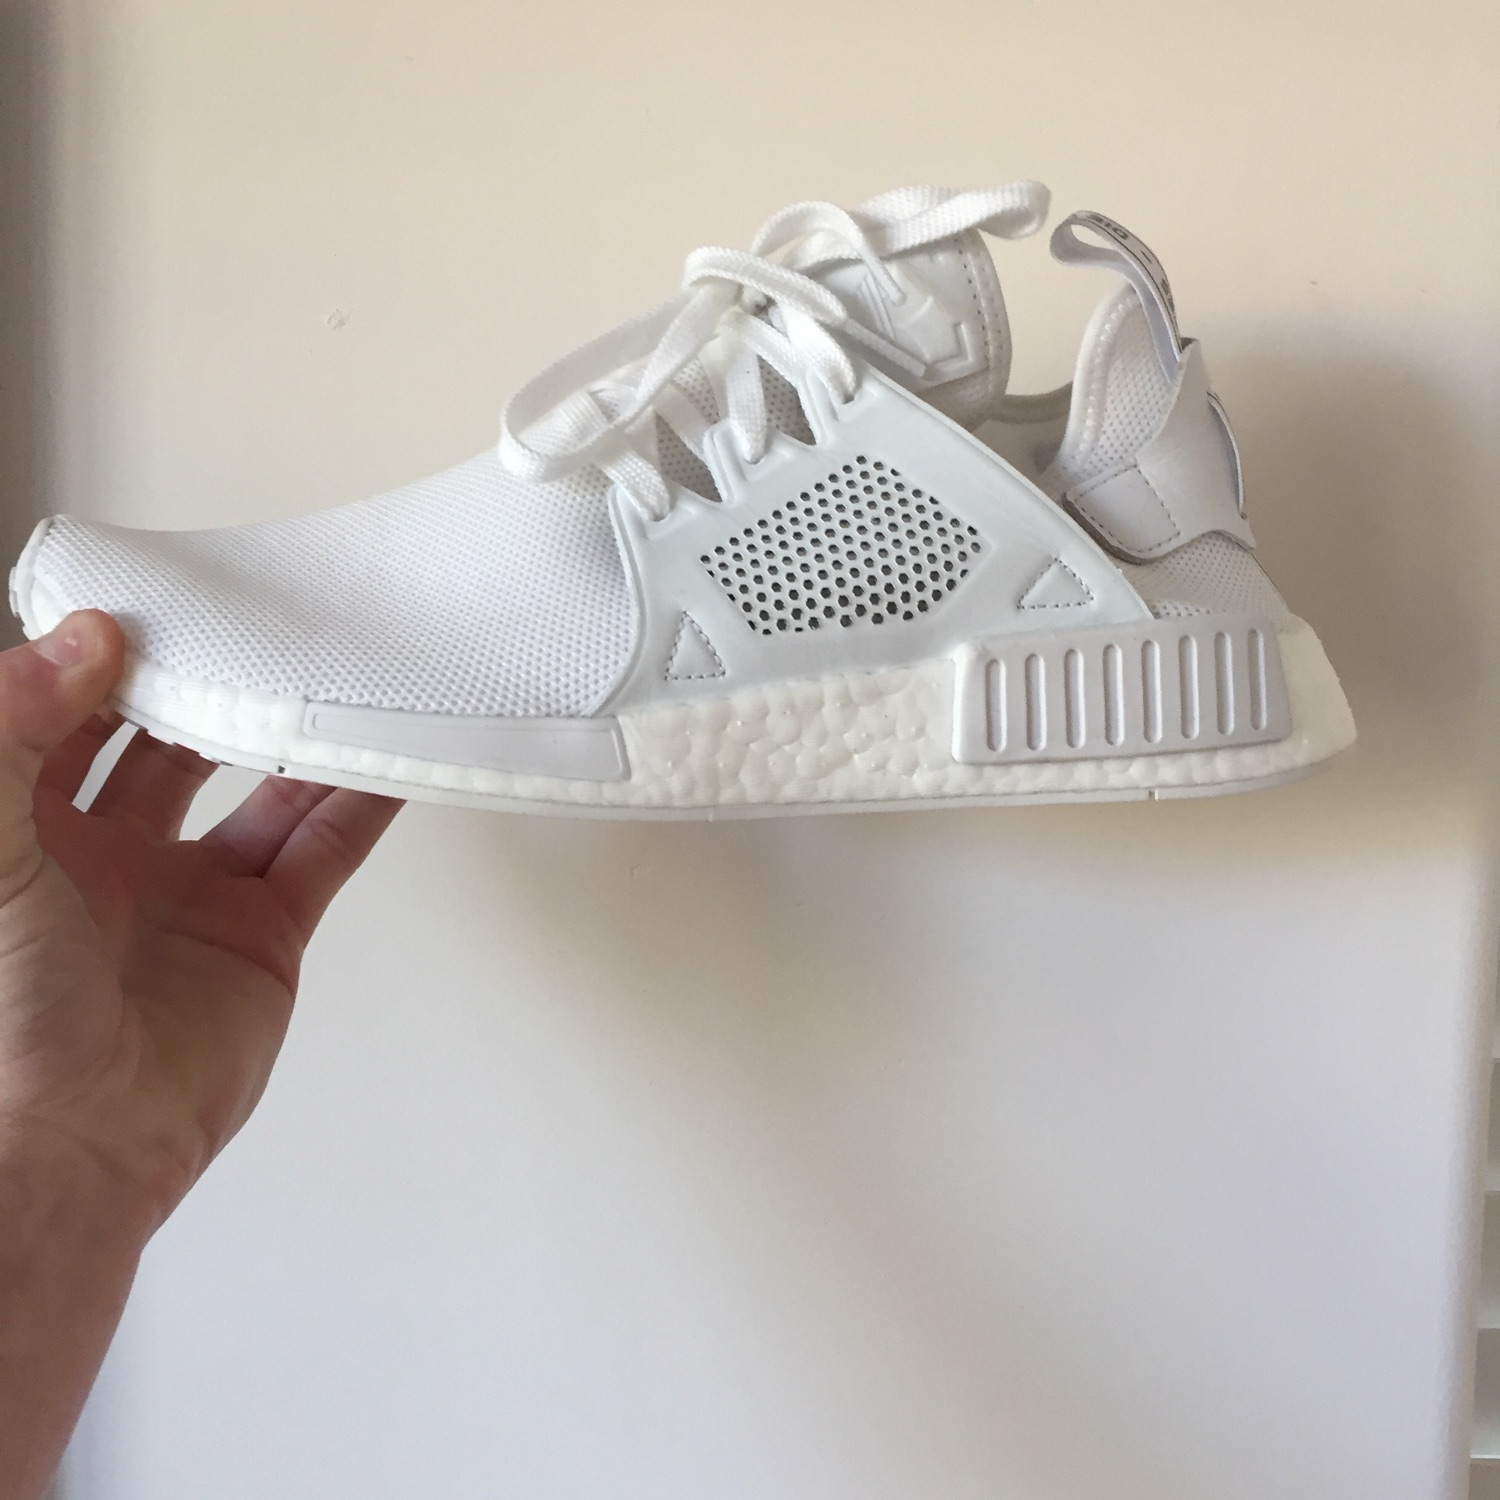 separation shoes 4e59d 0a7e4 Adidas Nmd Xr1 Triple White Under Retail